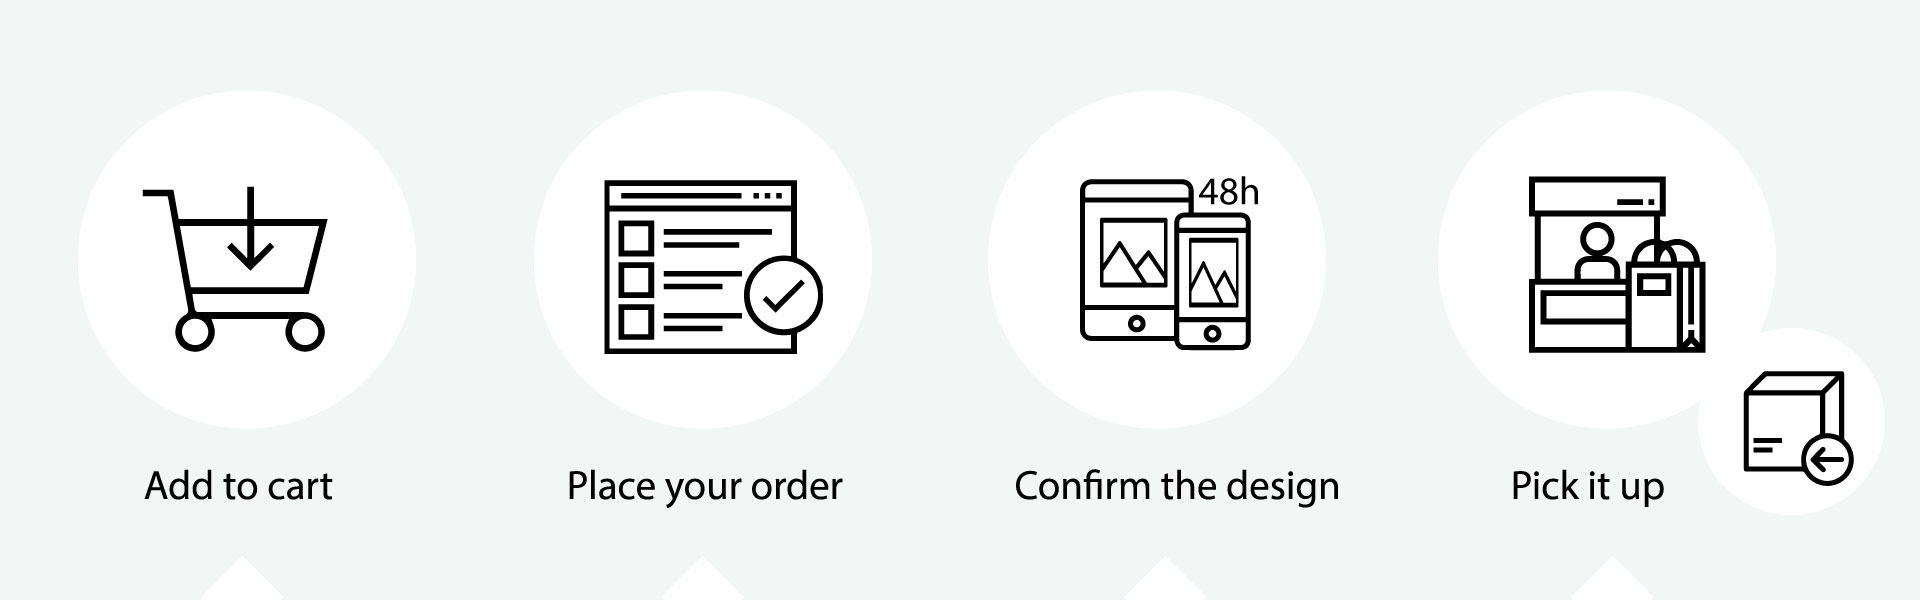 How to order on the website